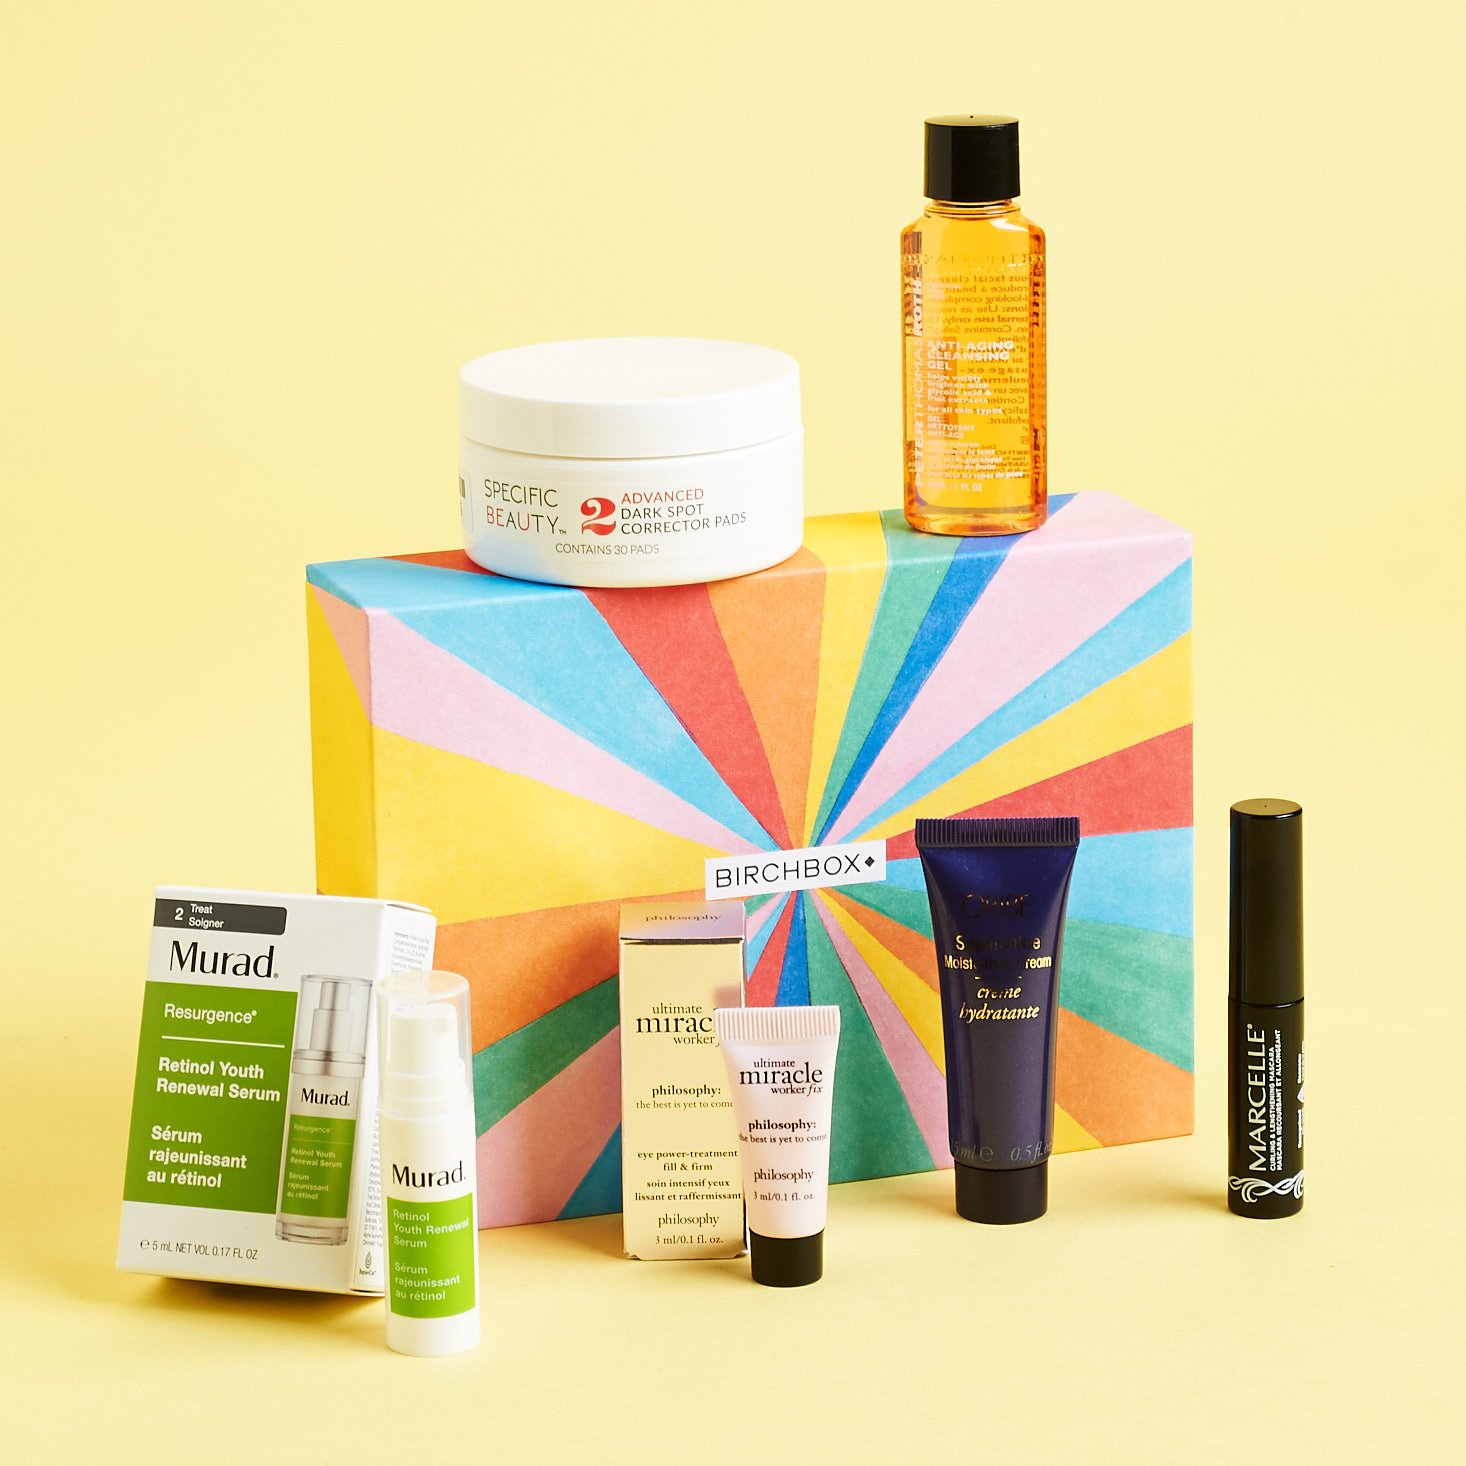 Birchbox Curated Box #1 Review + Coupon – June 2019